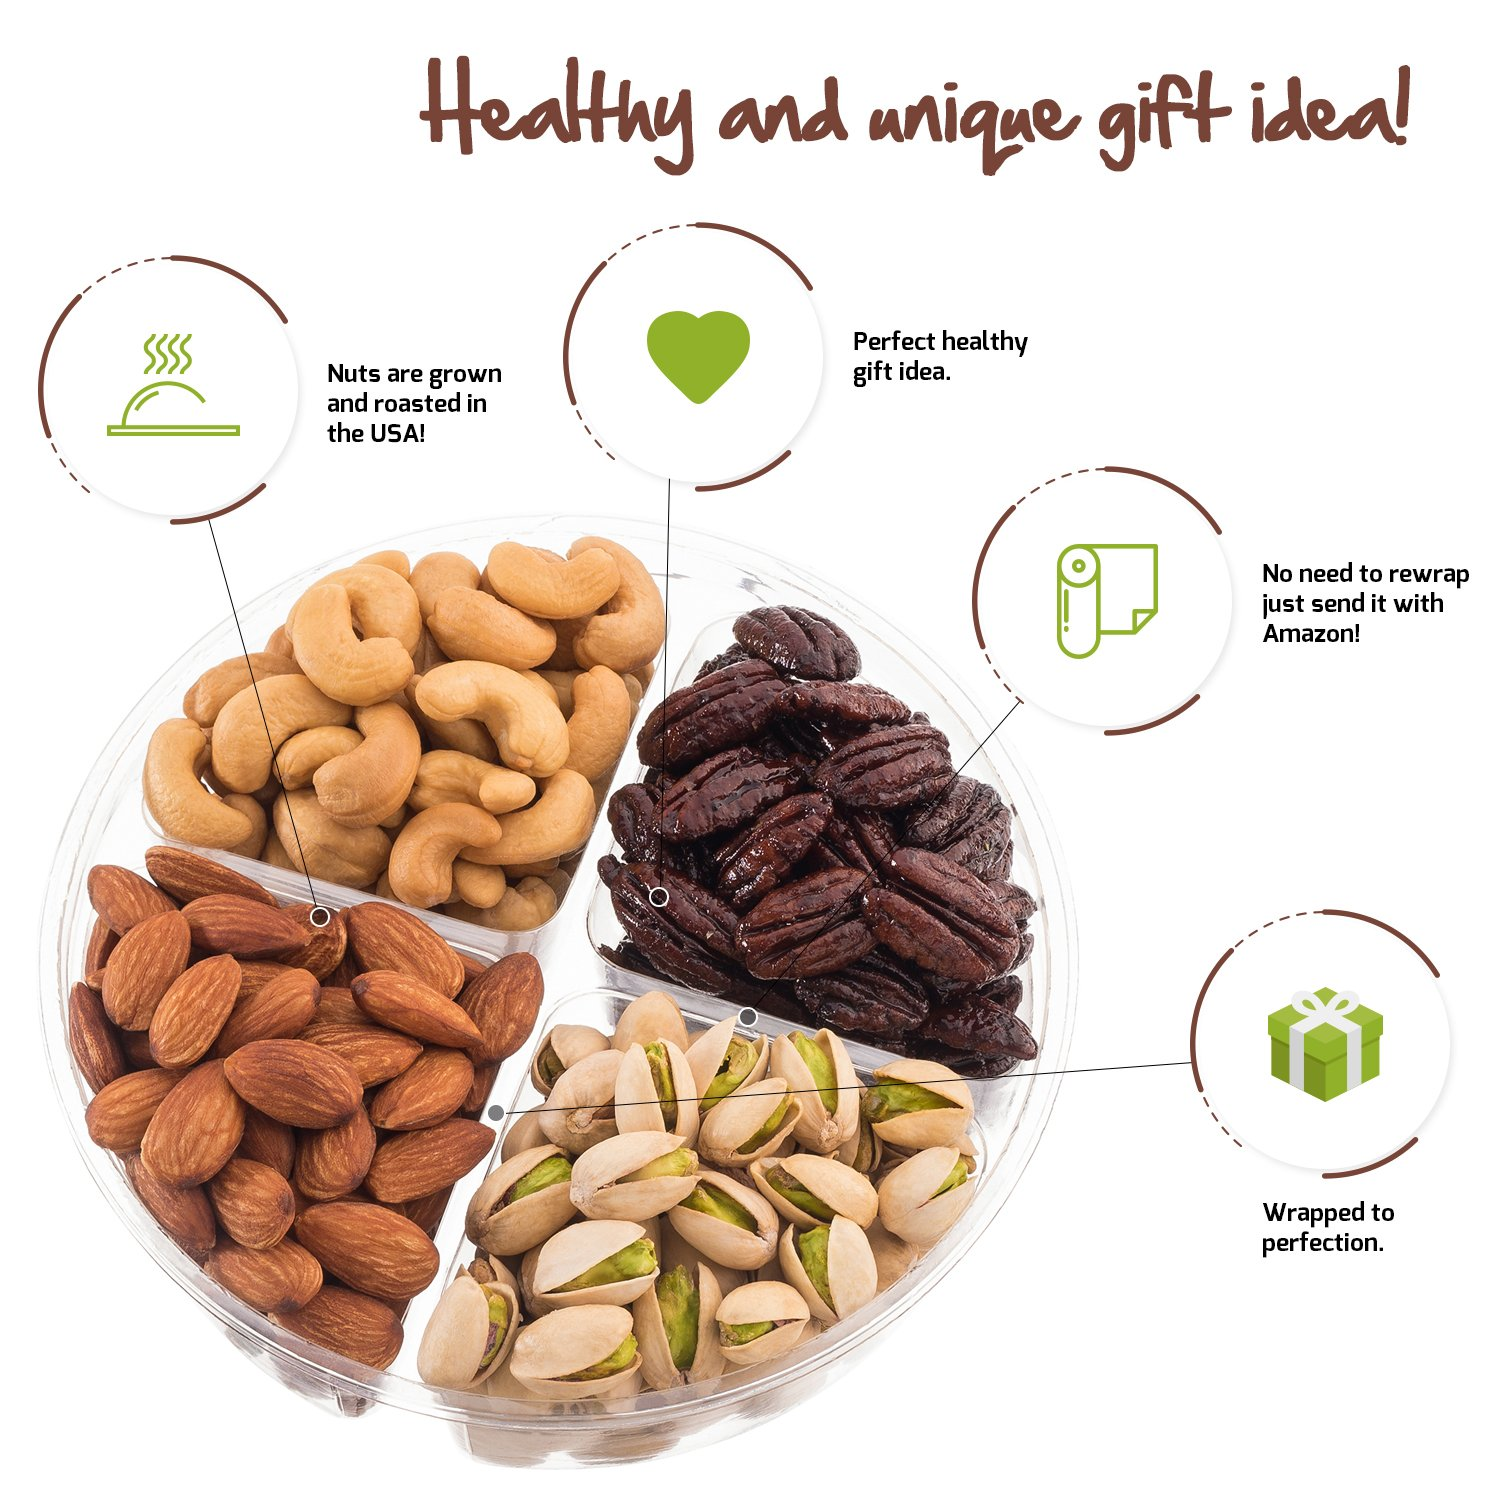 Nut Cravings Father's Day Gift Baskets - 4-Sectional Gourmet Mixed Nuts Prime Food Gift Tray - Healthy Holiday Gift Assortment For Birthday - Sympathy - Get Well - Corporate Gift Box - Or Any Occasion by Nut Cravings (Image #4)